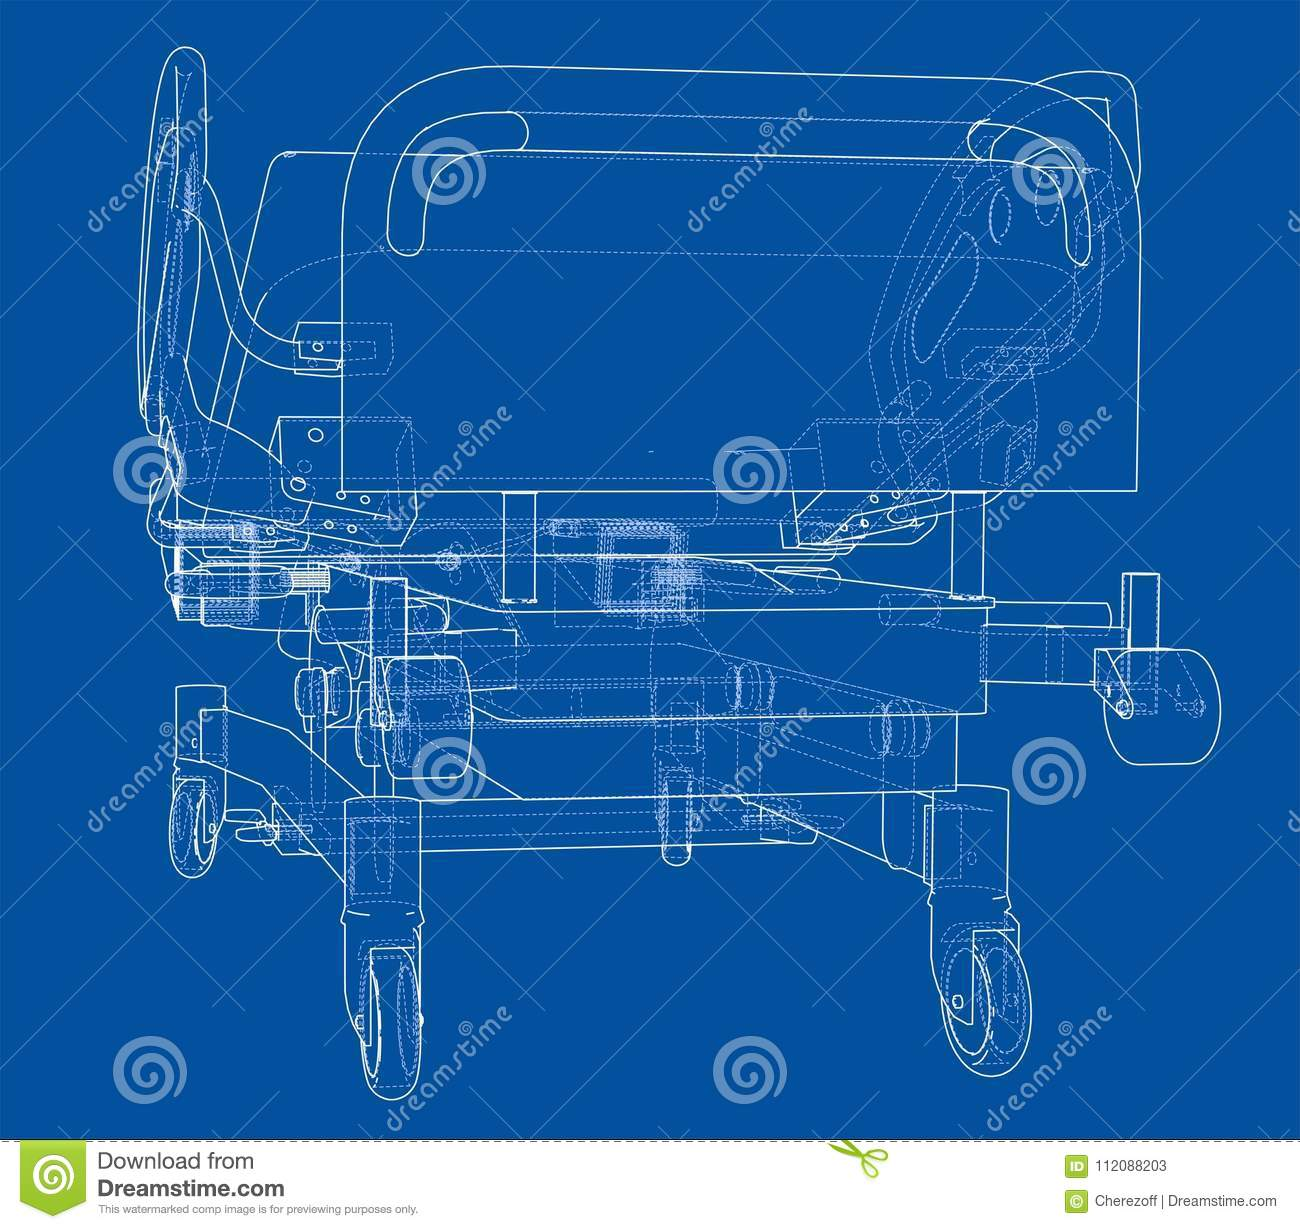 Hospital Bed Wiring Diagram Library Remote Control Diagrams Sketch Vector Rendering Of 3d Wire Frame Style The Layers